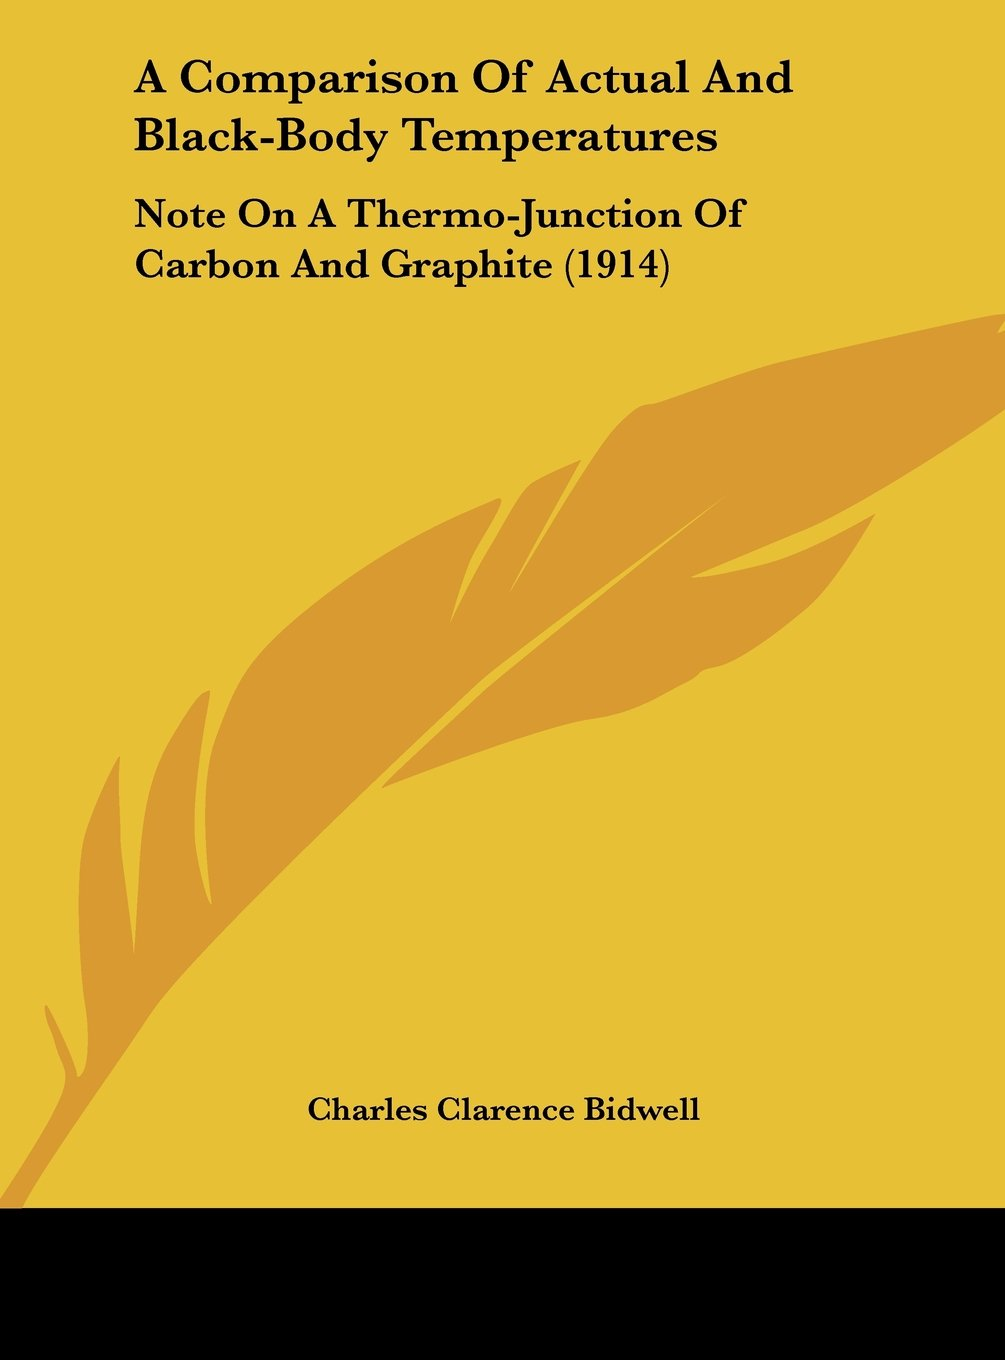 A Comparison Of Actual And Black-Body Temperatures: Note On A Thermo-Junction Of Carbon And Graphite (1914) pdf epub